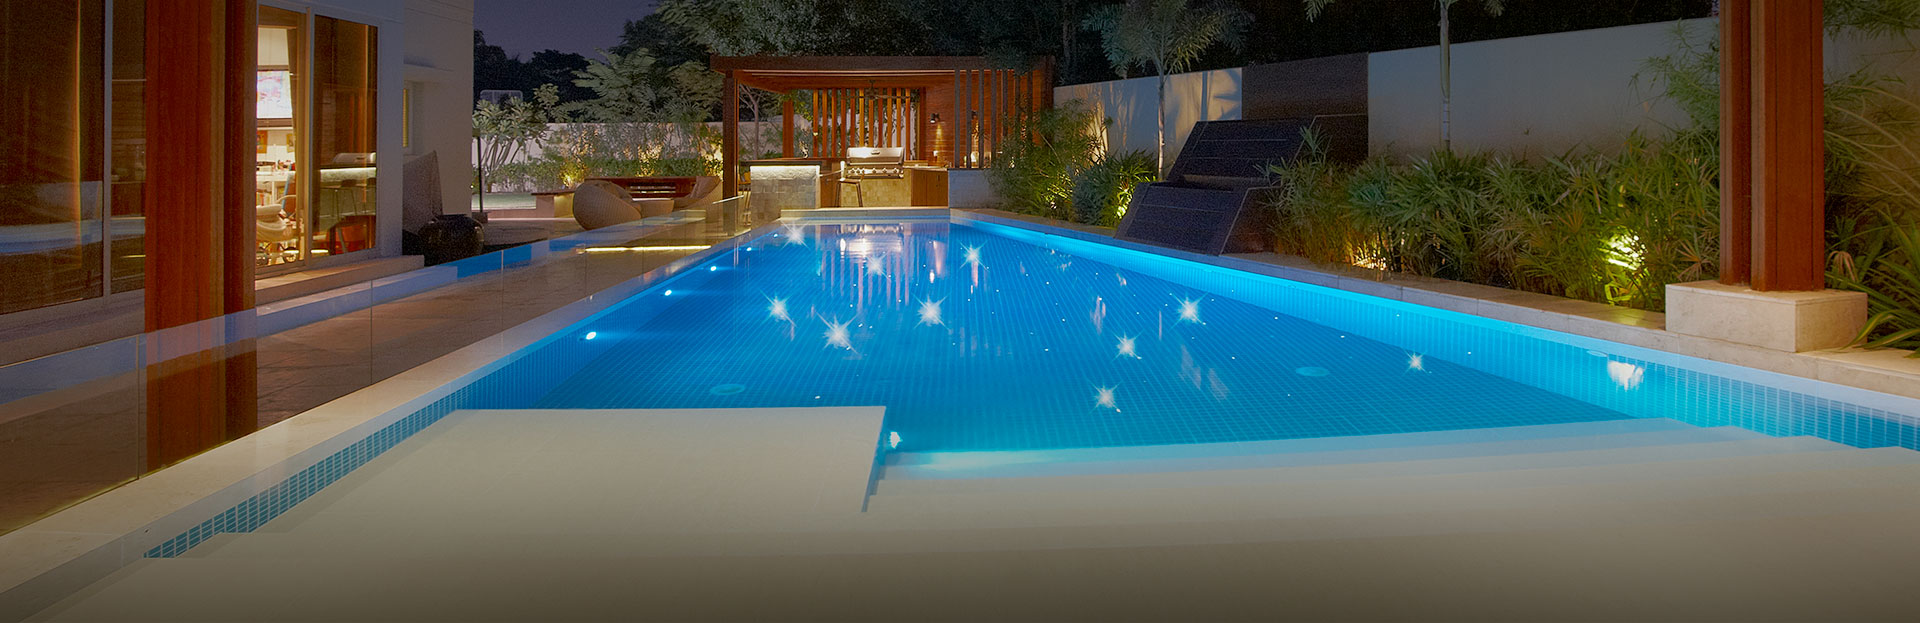 Infinity pool design infinity pool design company dubai for Pool design dubai